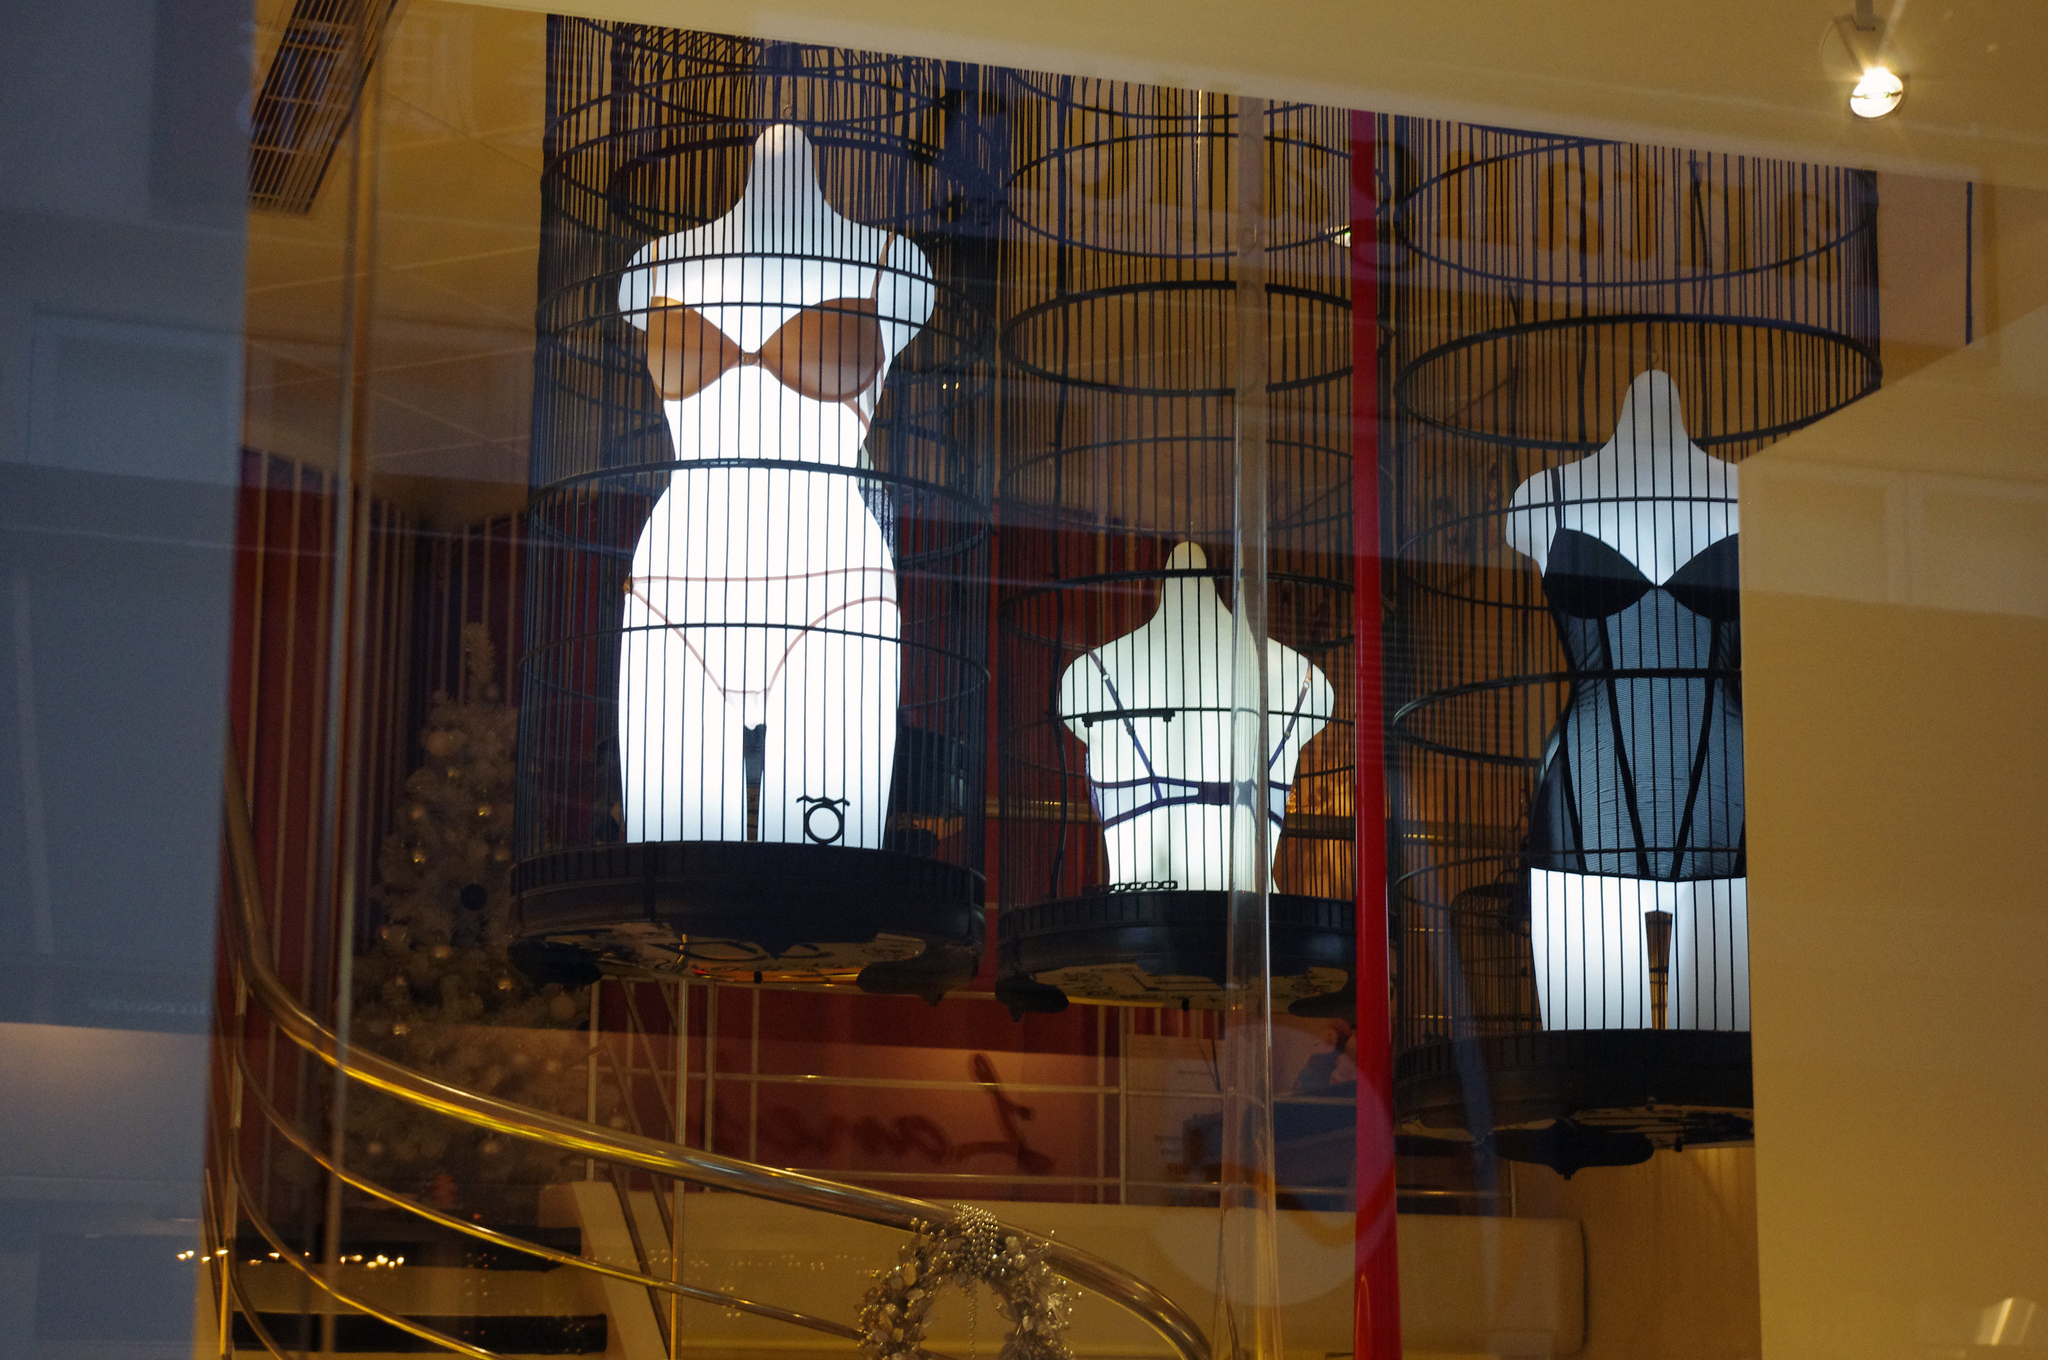 Lingerie display at Bubies in Hong Kong. Photo by alphacityguides.